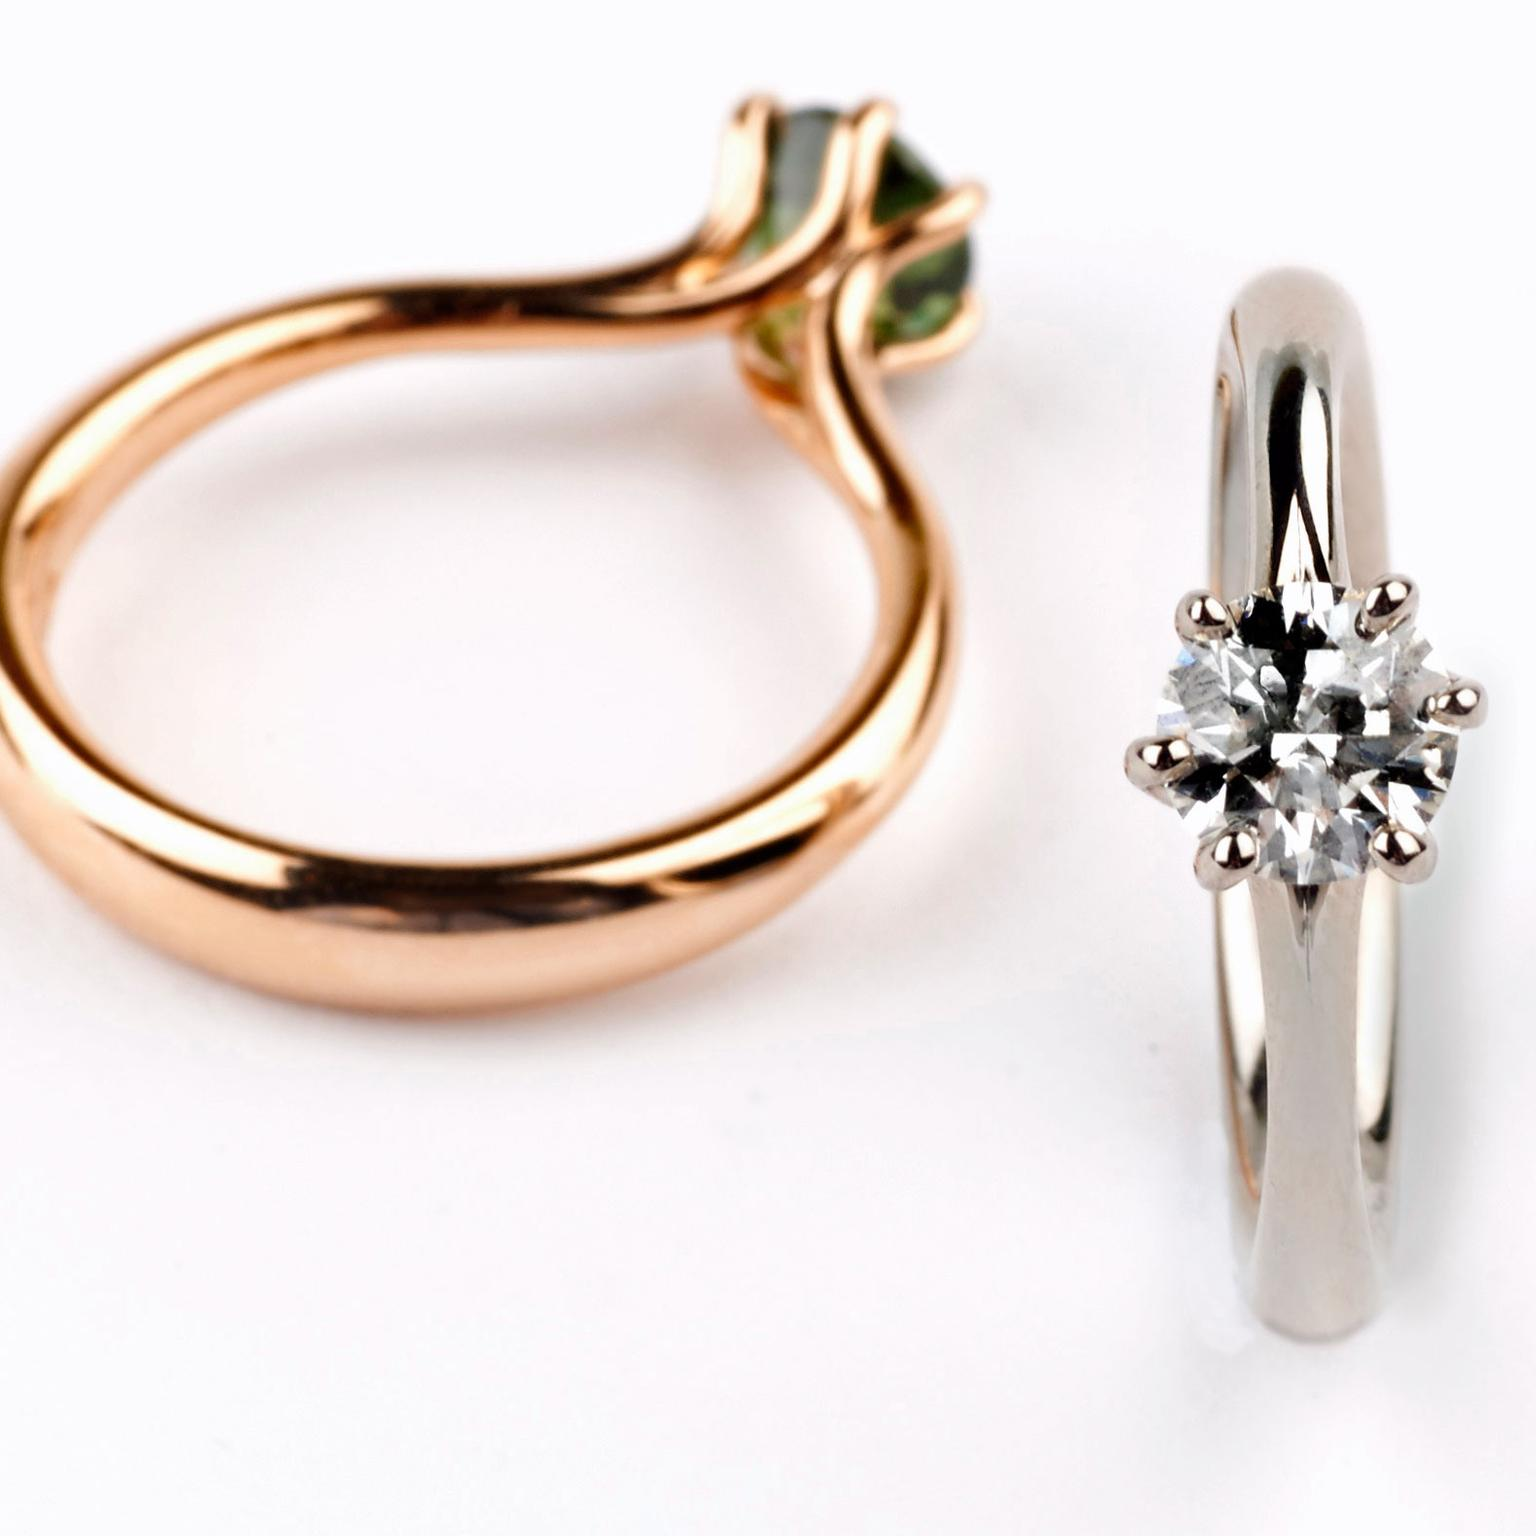 Jon Dibben Winter Meadow engagement-rings in Fairtrade gold